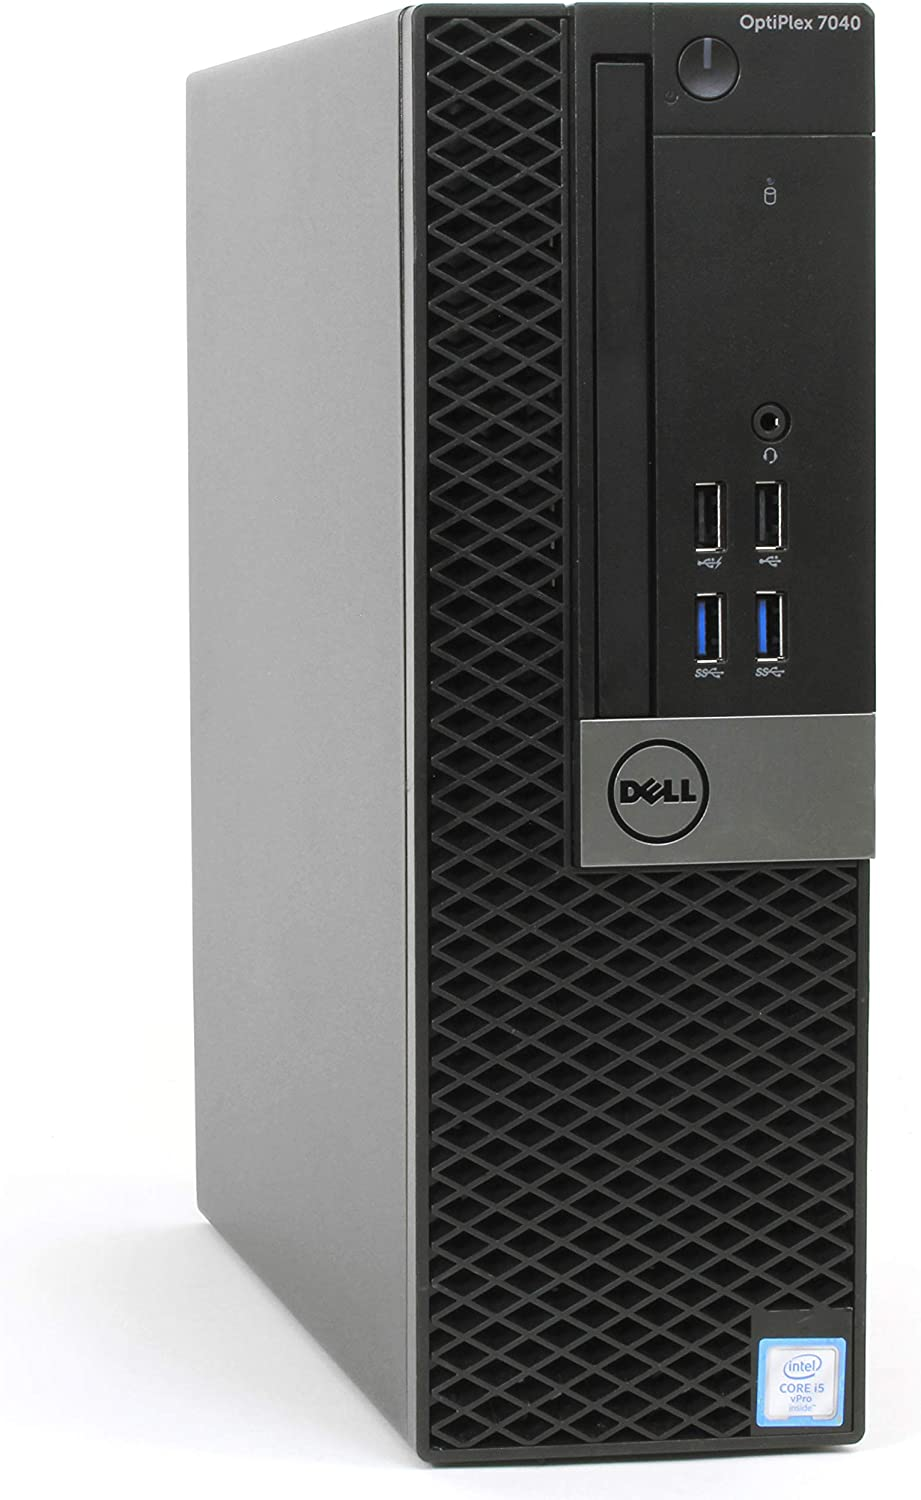 Dell Optiplex 7040 Small Form Desktop, Intel Quad Core i5 6500 3.2Ghz, 64GB DDR4, 1TB Hard Drive, HDMI, Windows 10 (Renewed)